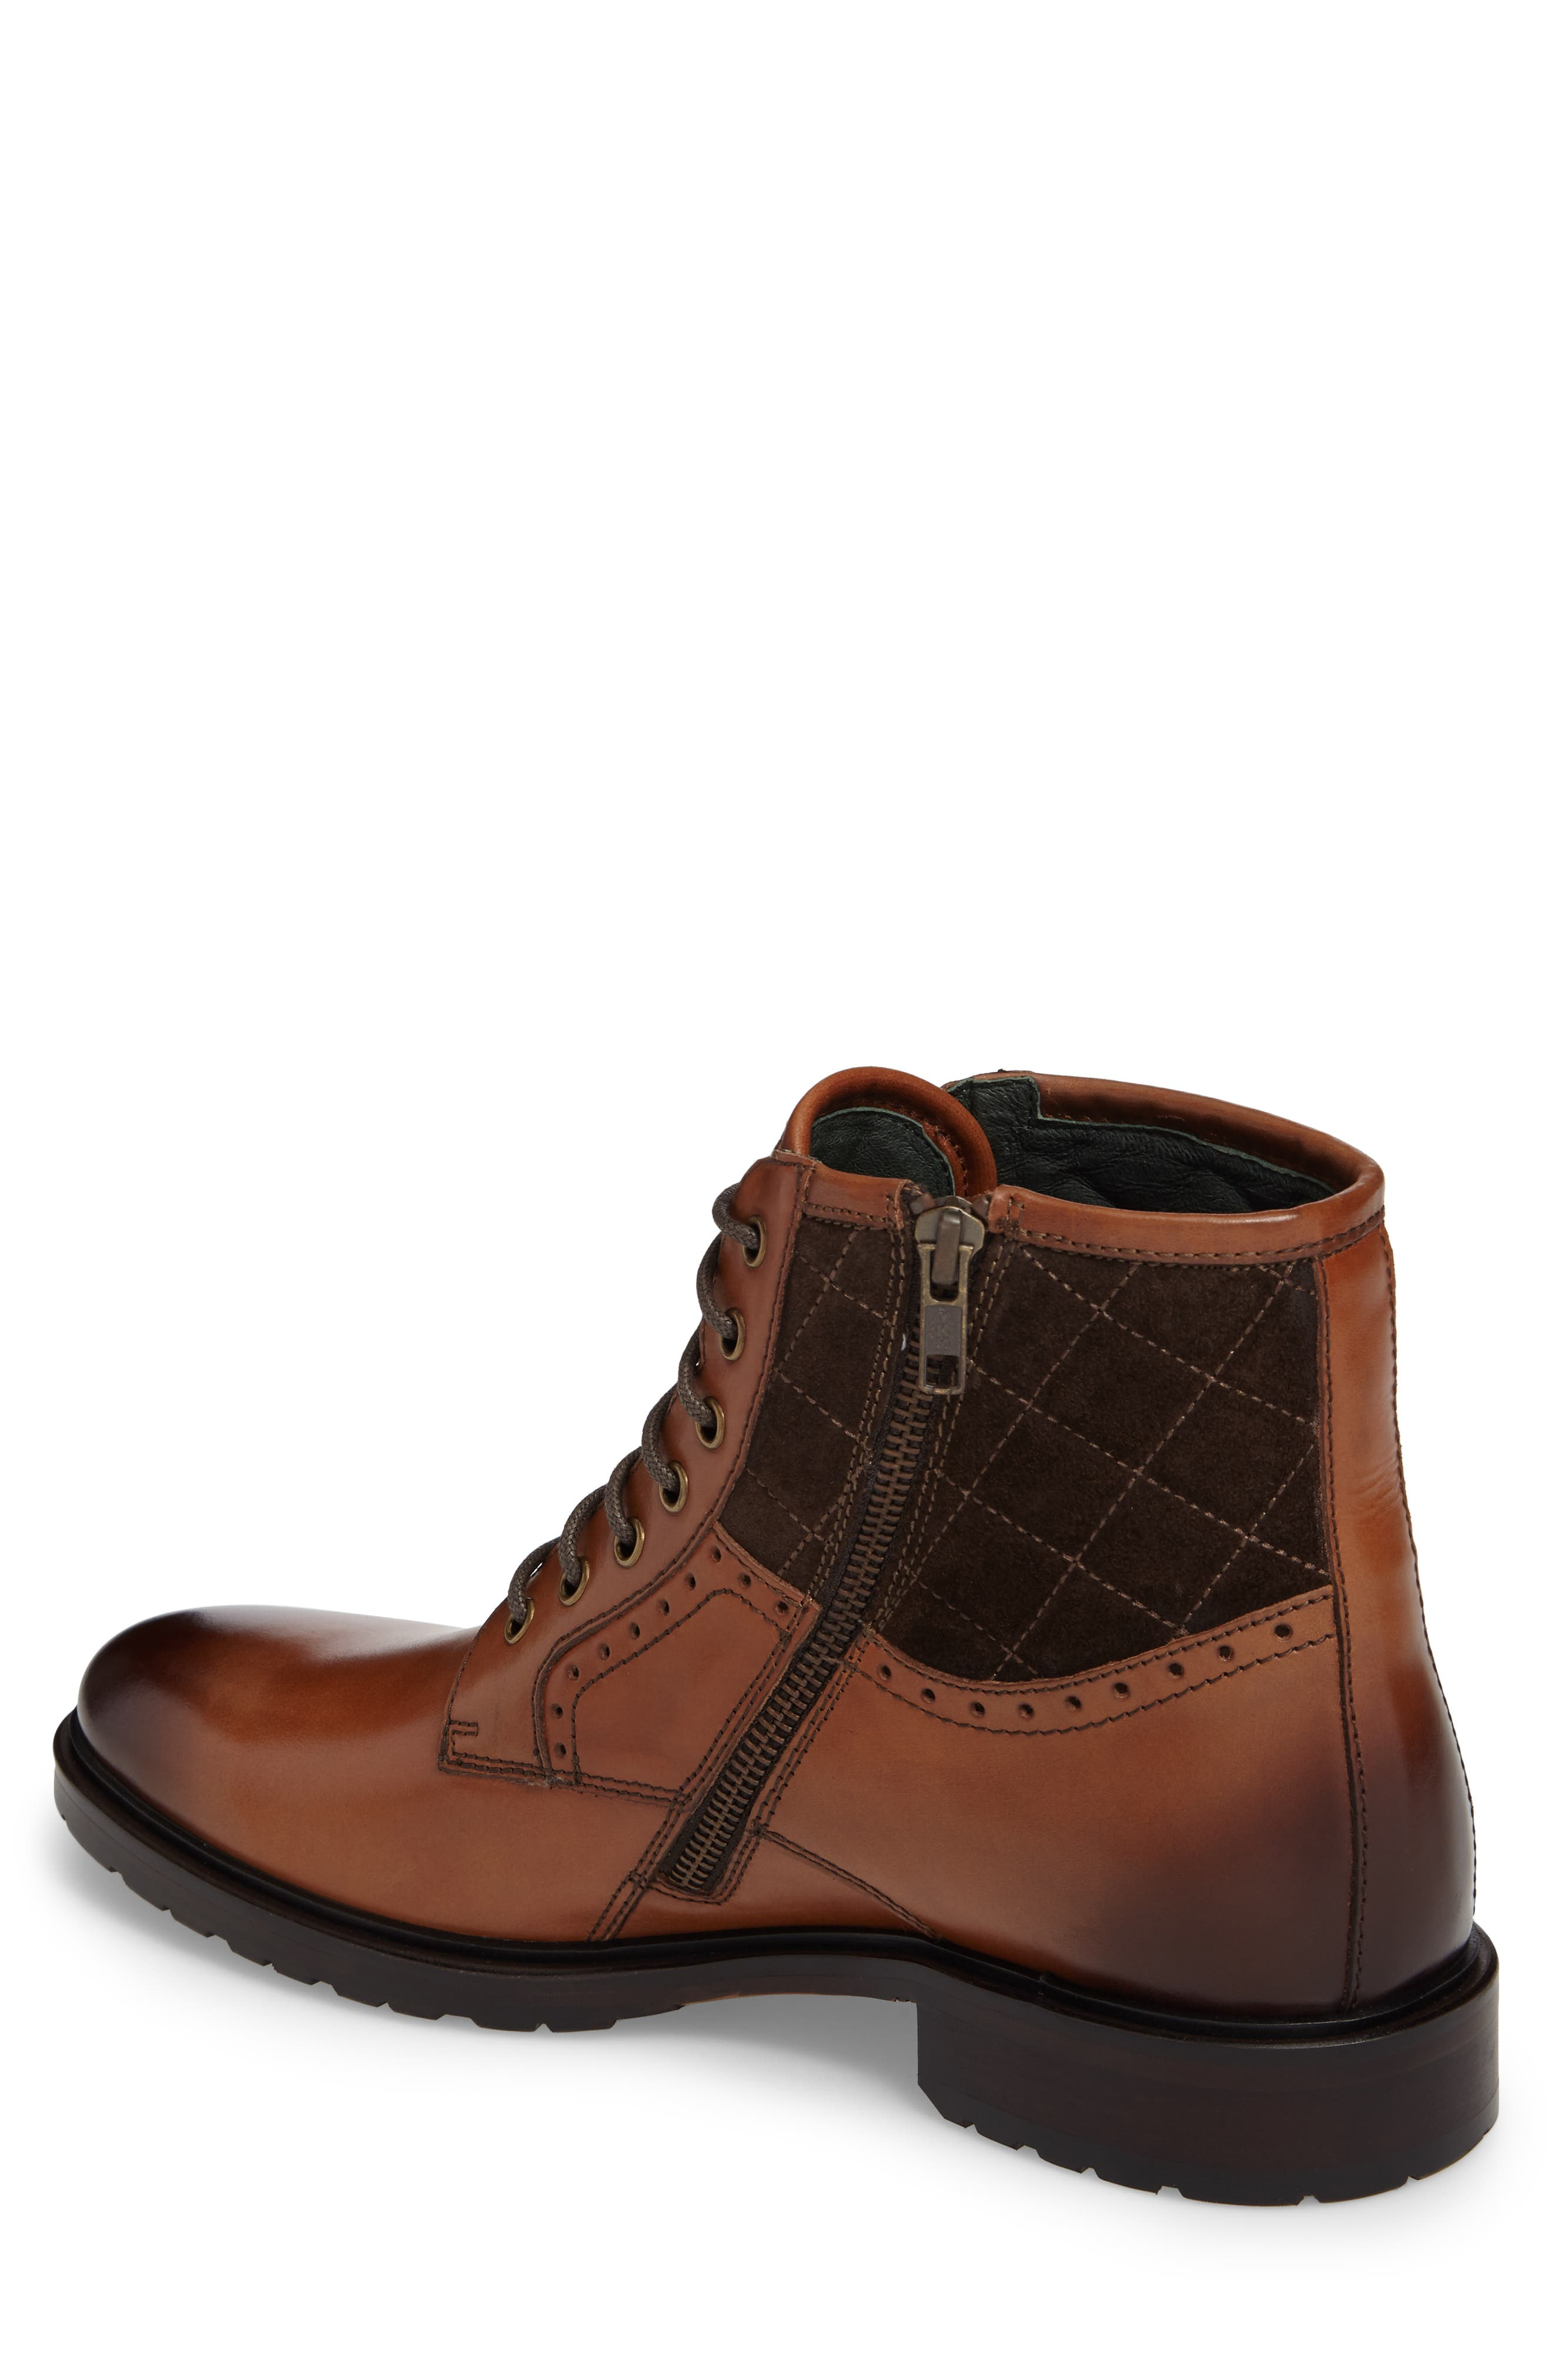 Myles Plain Toe Boot,                             Alternate thumbnail 4, color,